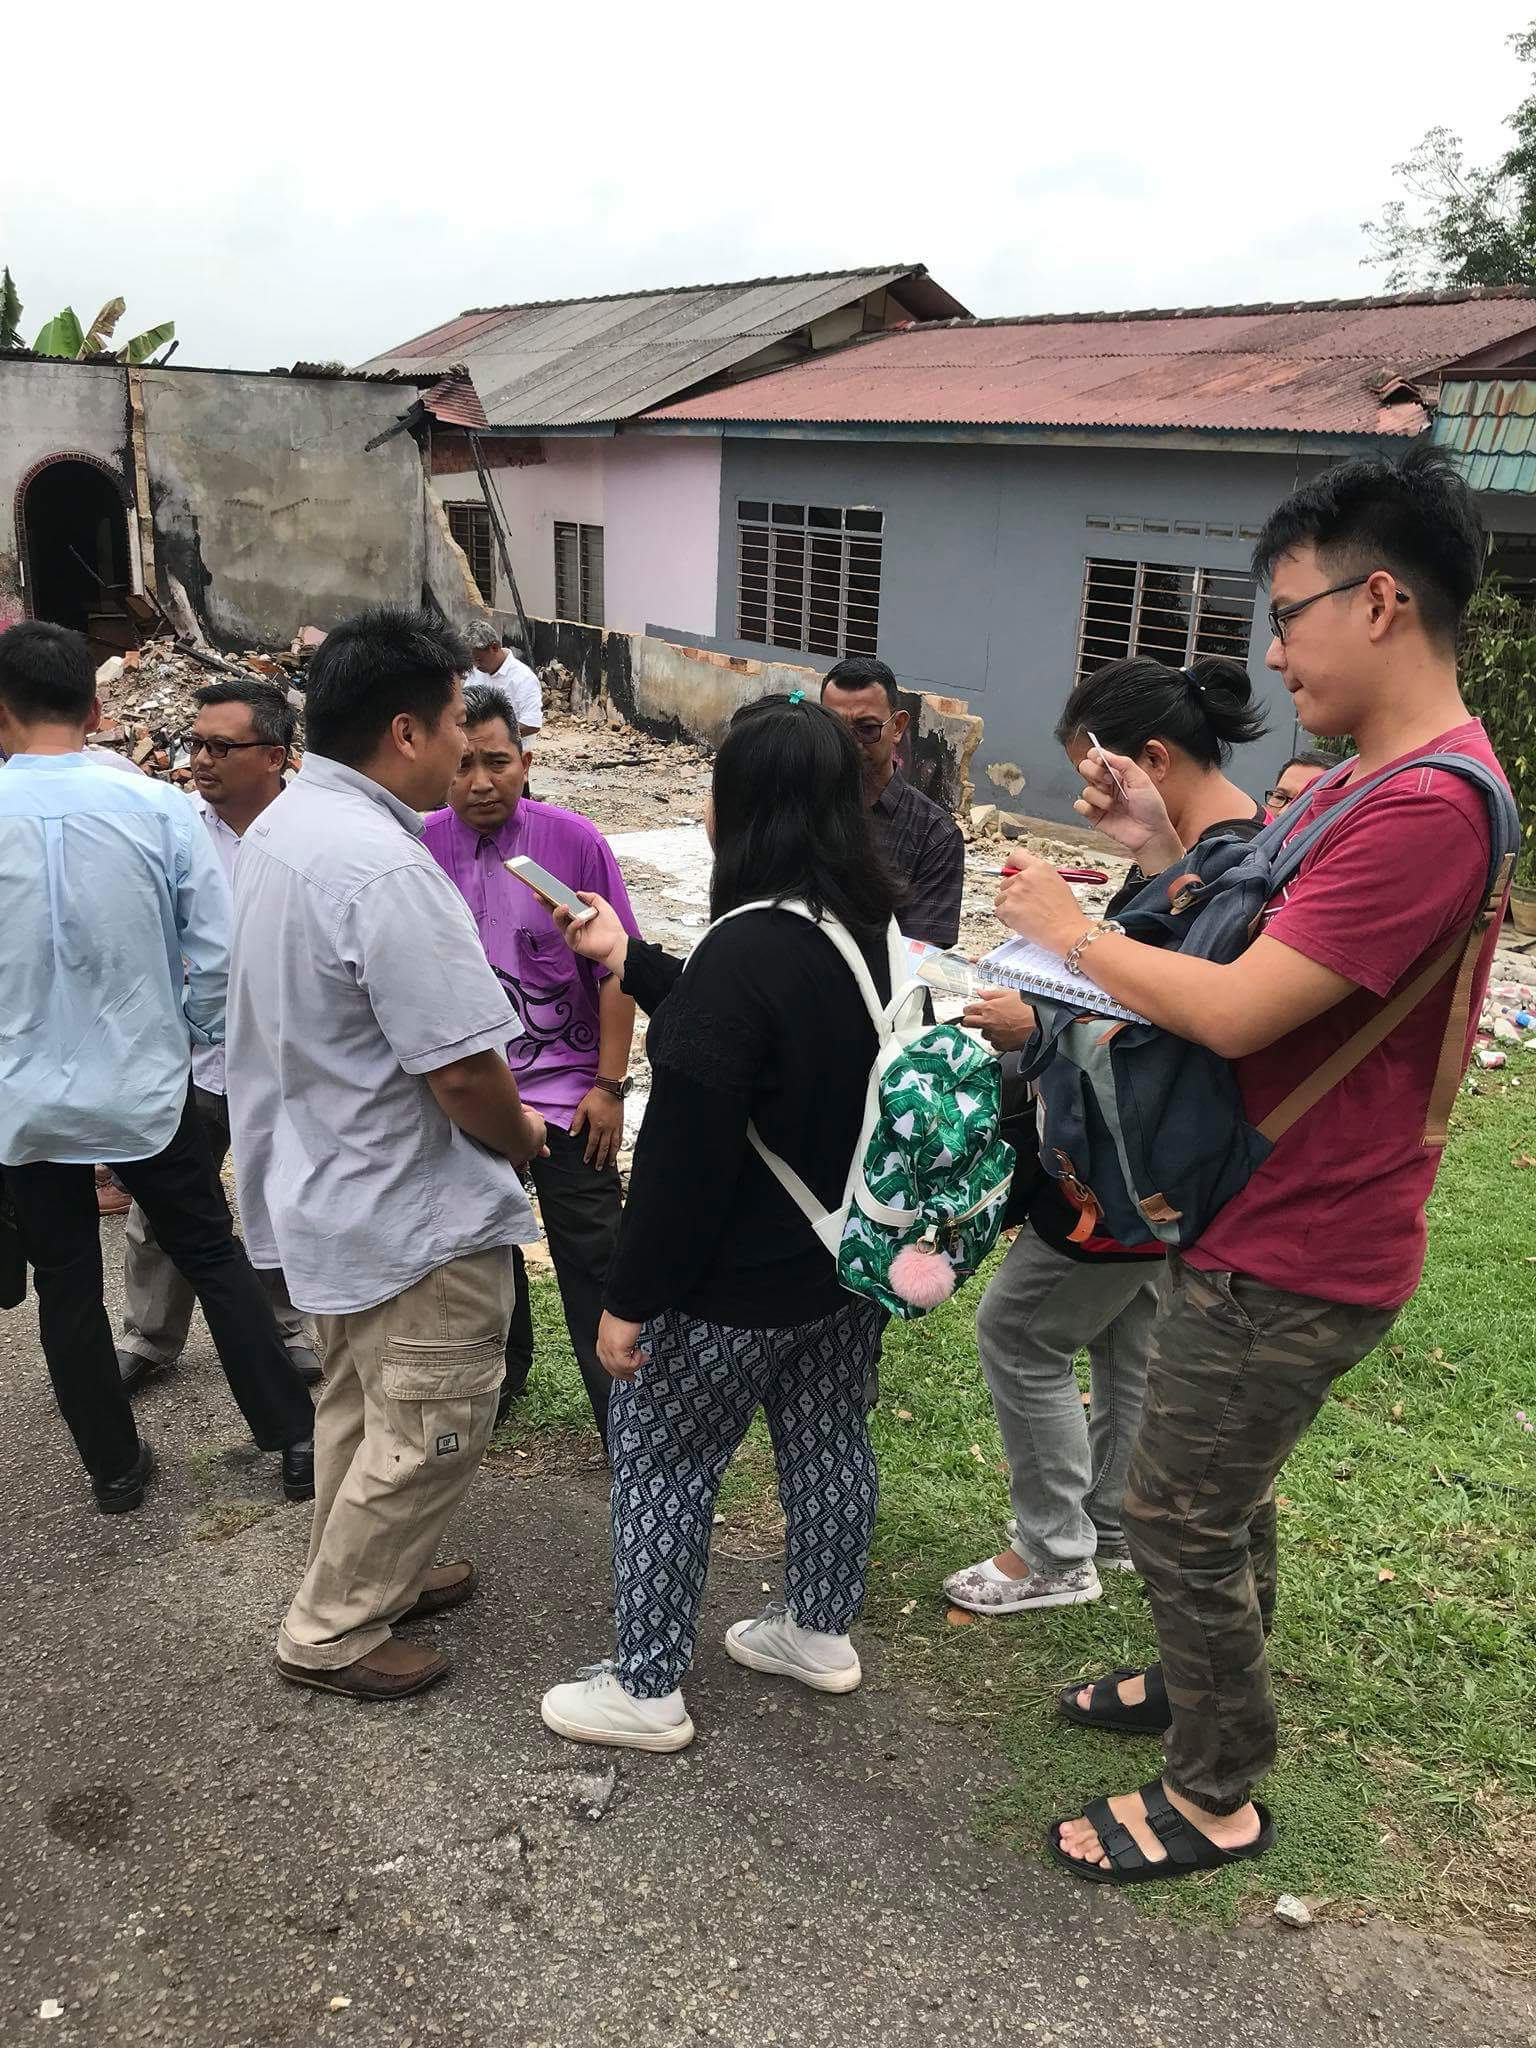 YB. Damien and Mr Joji Yang visit the site of the burning house